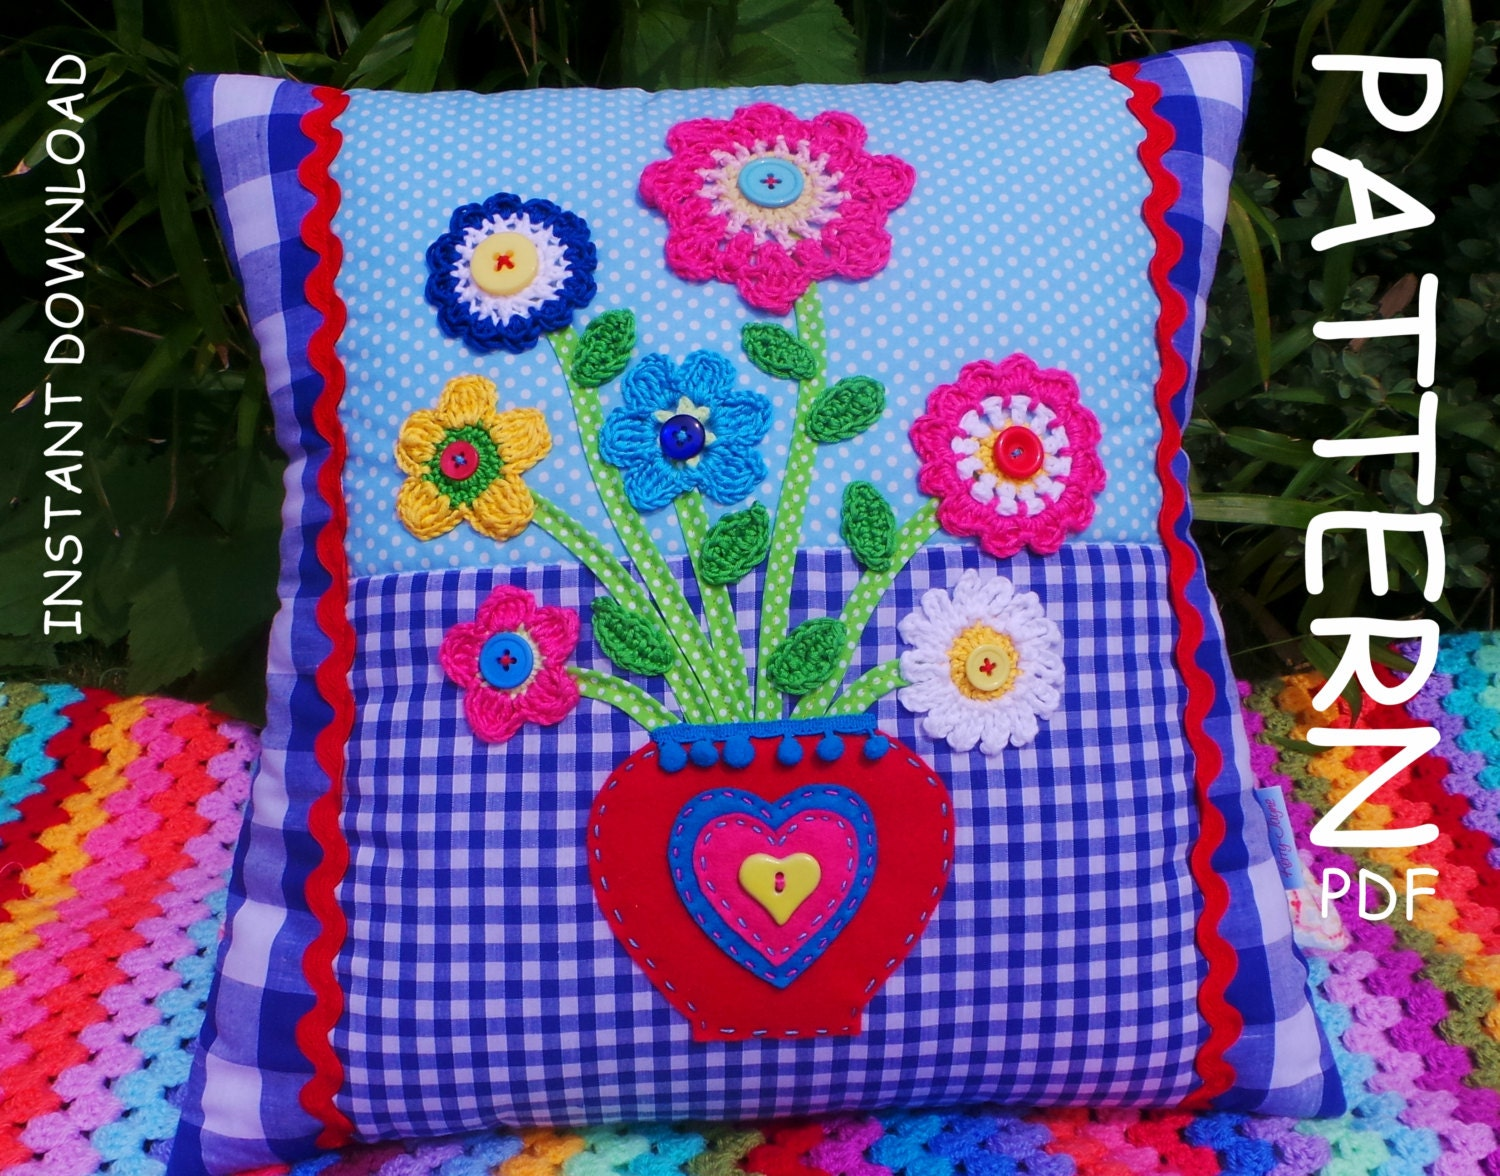 Crochet pillow pattern valentines day gift applique cushion crochet pillow pattern valentines day gift applique cushion pattern patchwork pillow pattern crochet applique pattern valentines gift pdf bankloansurffo Image collections